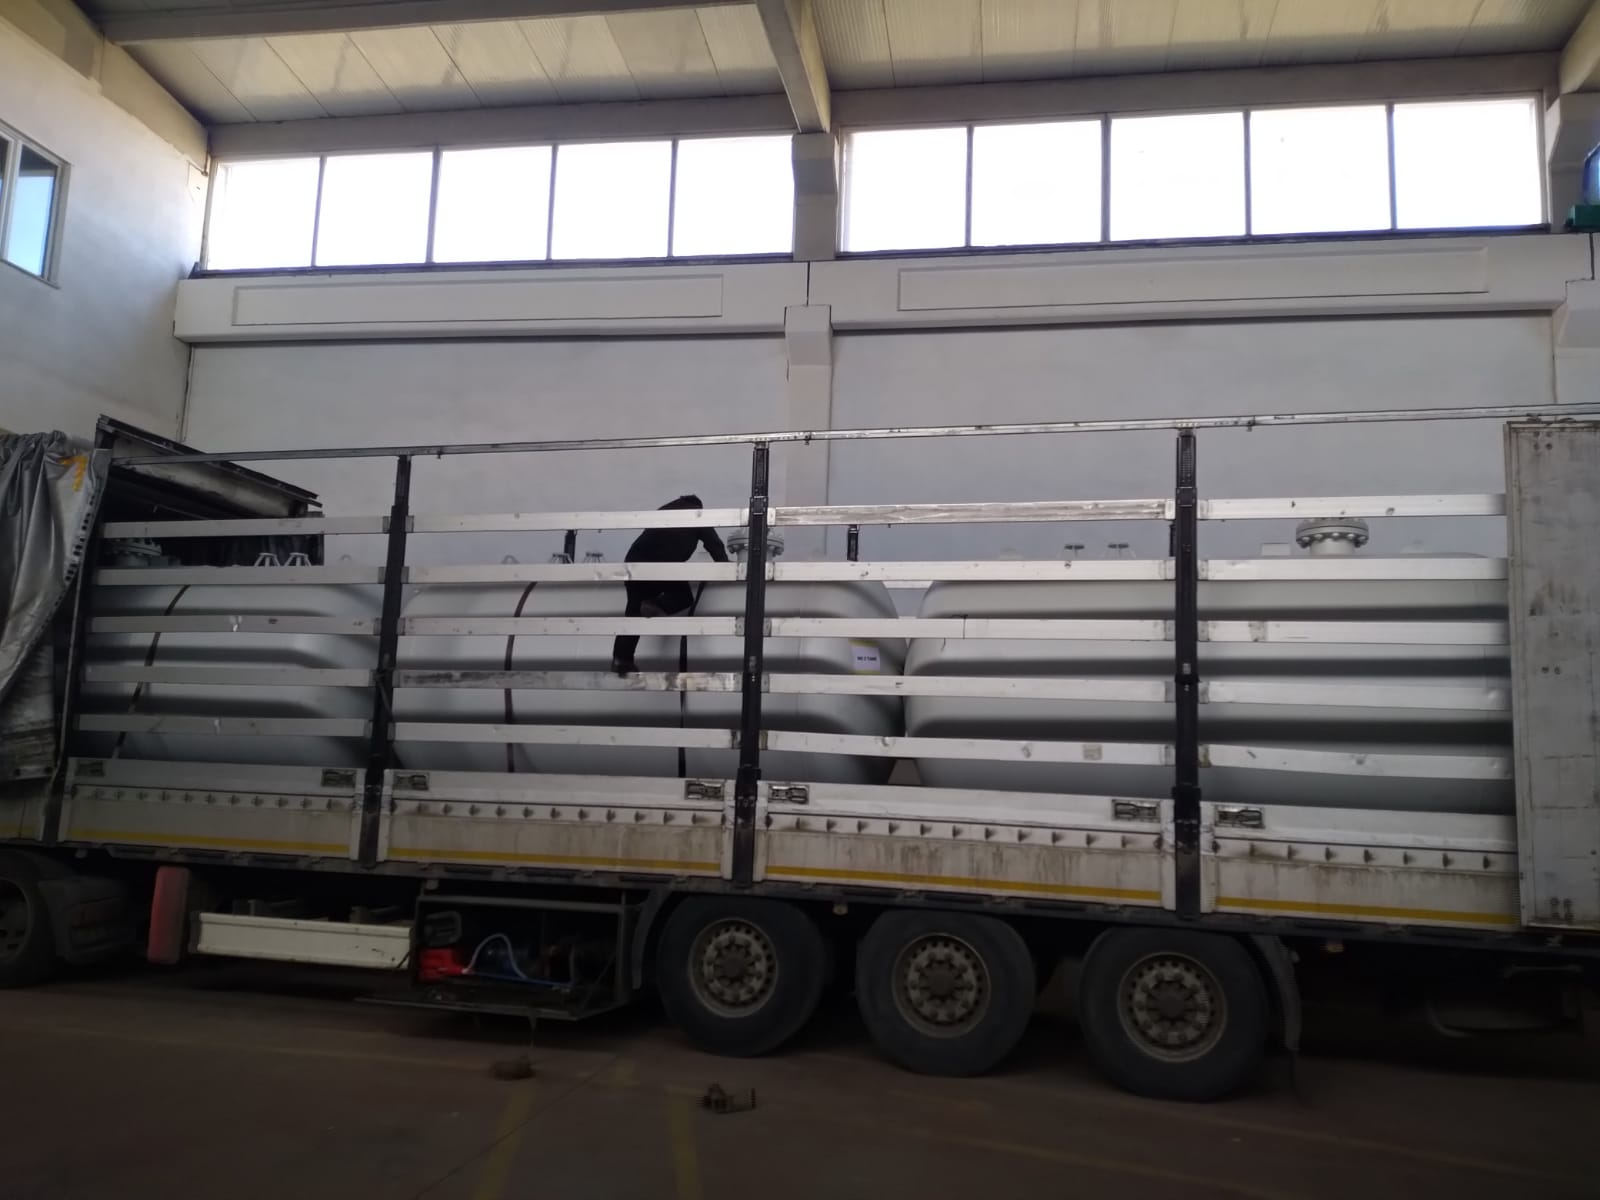 20 pieces 10 m3 Under Ground Lpg Storage tank delivery to Russia Federation 25.01.2019 EN Design